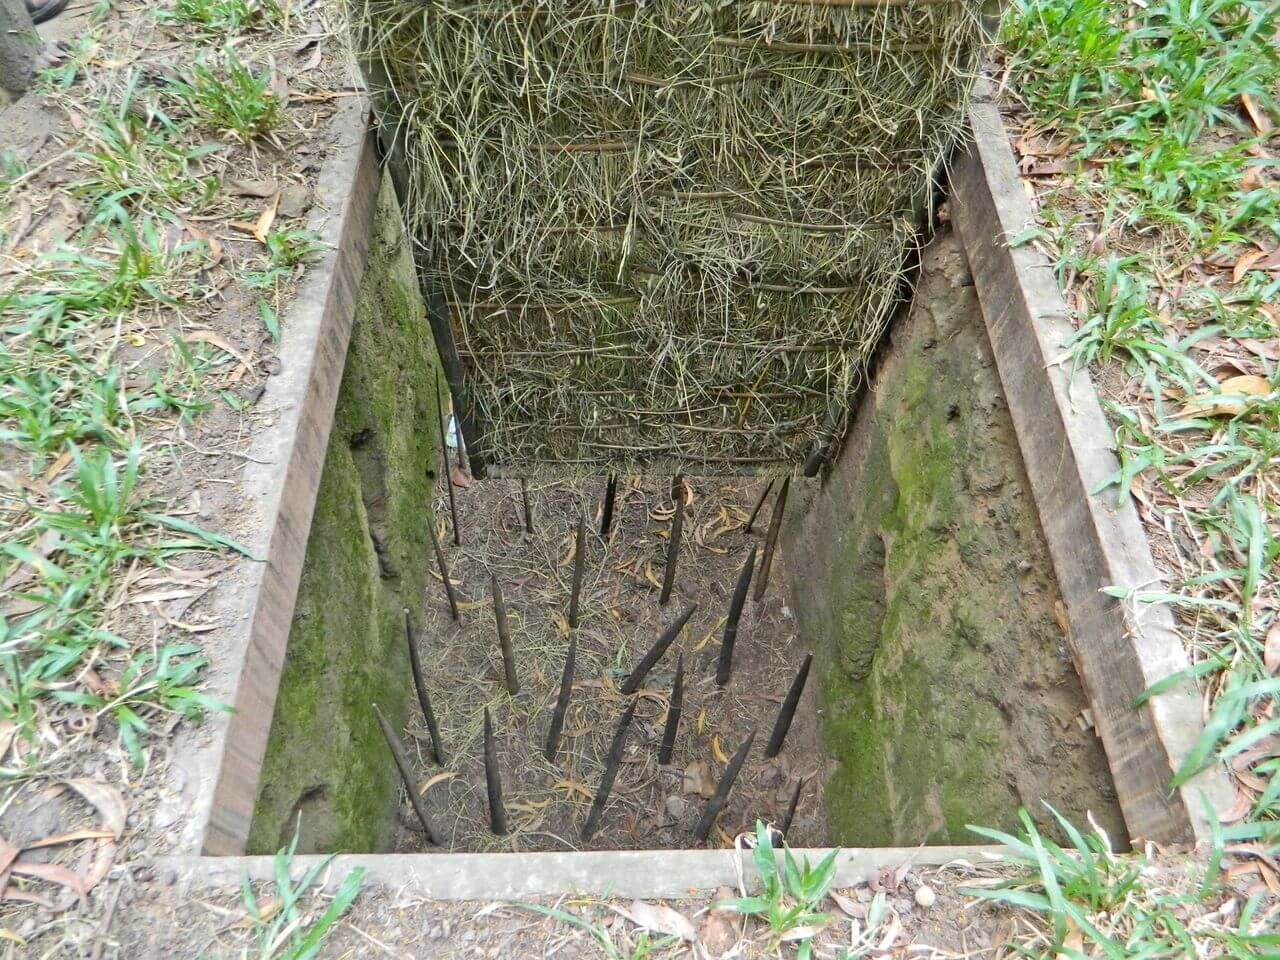 Spiked trap at the bottom of the well